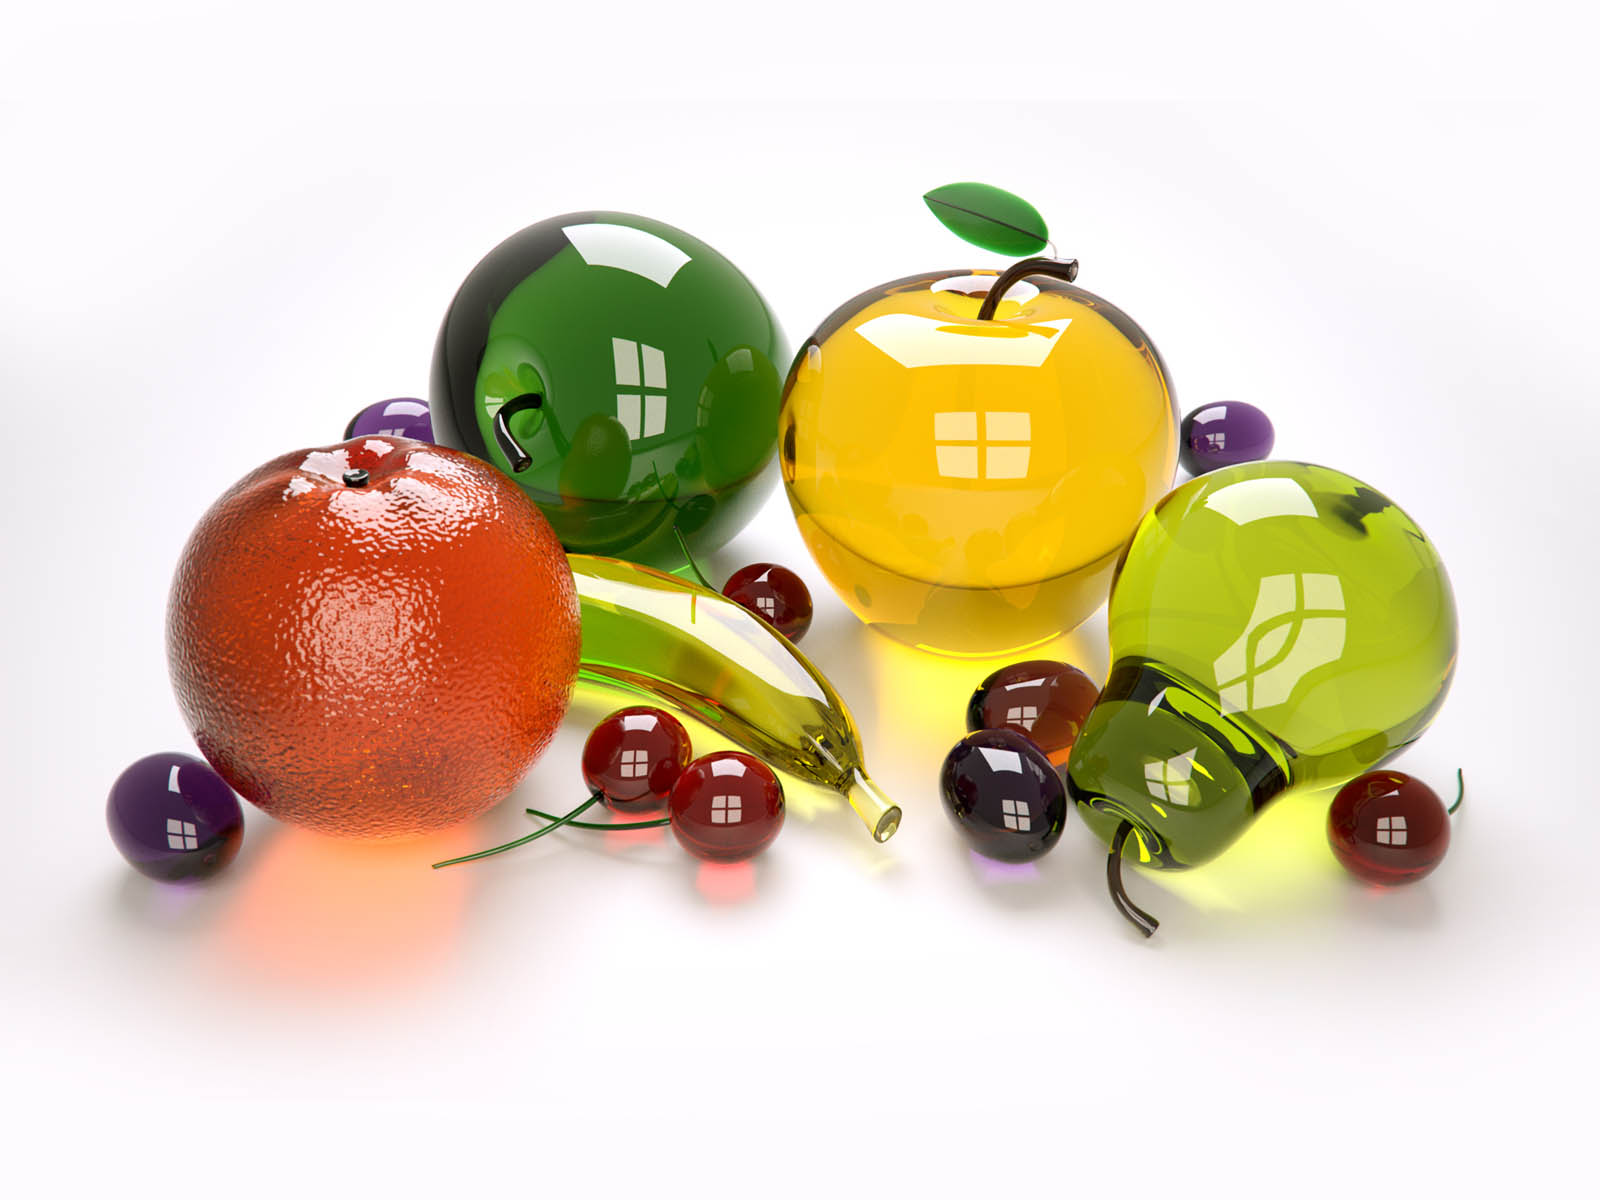 Fruits Wallpapers Images Photos Pictures and Backgrounds for 1600x1200